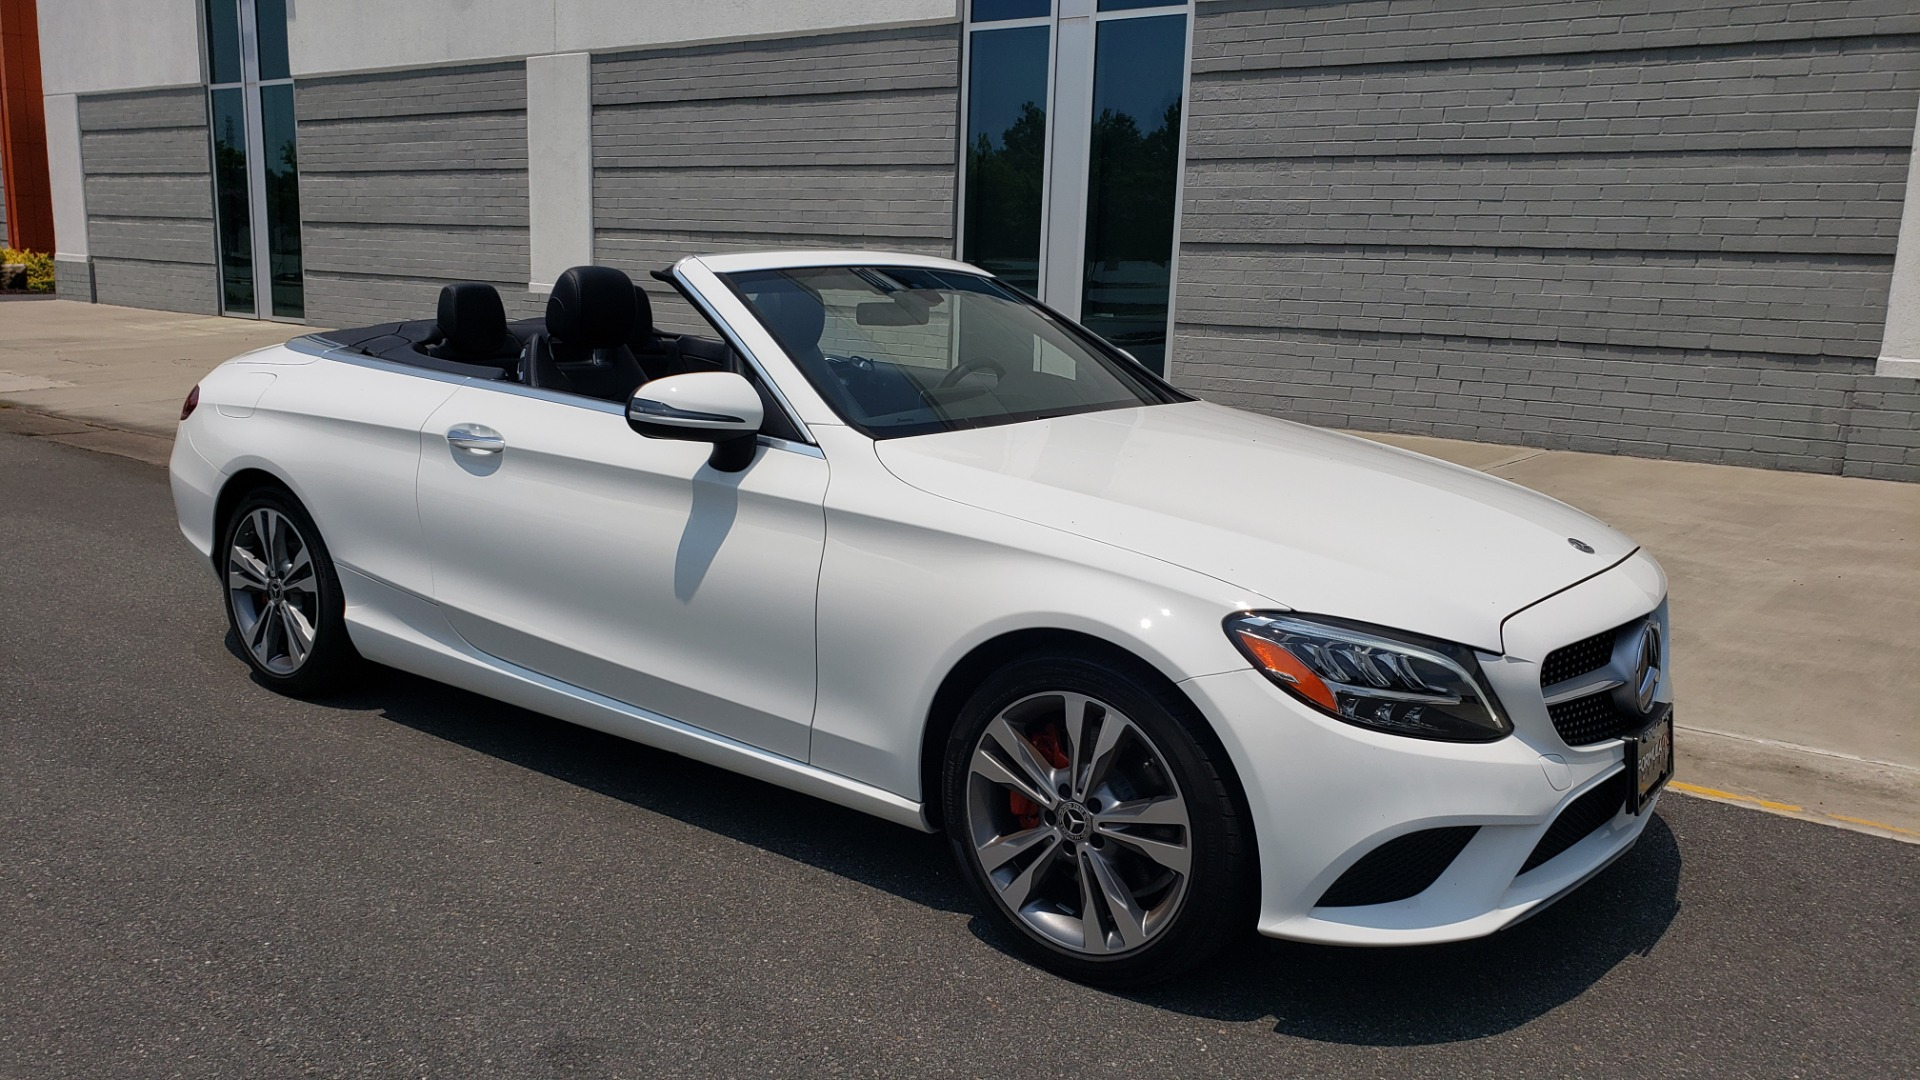 Used 2019 Mercedes-Benz C-CLASS C 300 CABRIOLET 2.0L / AUTO / NAV / HD RADIO / REARVIEW for sale $46,995 at Formula Imports in Charlotte NC 28227 3